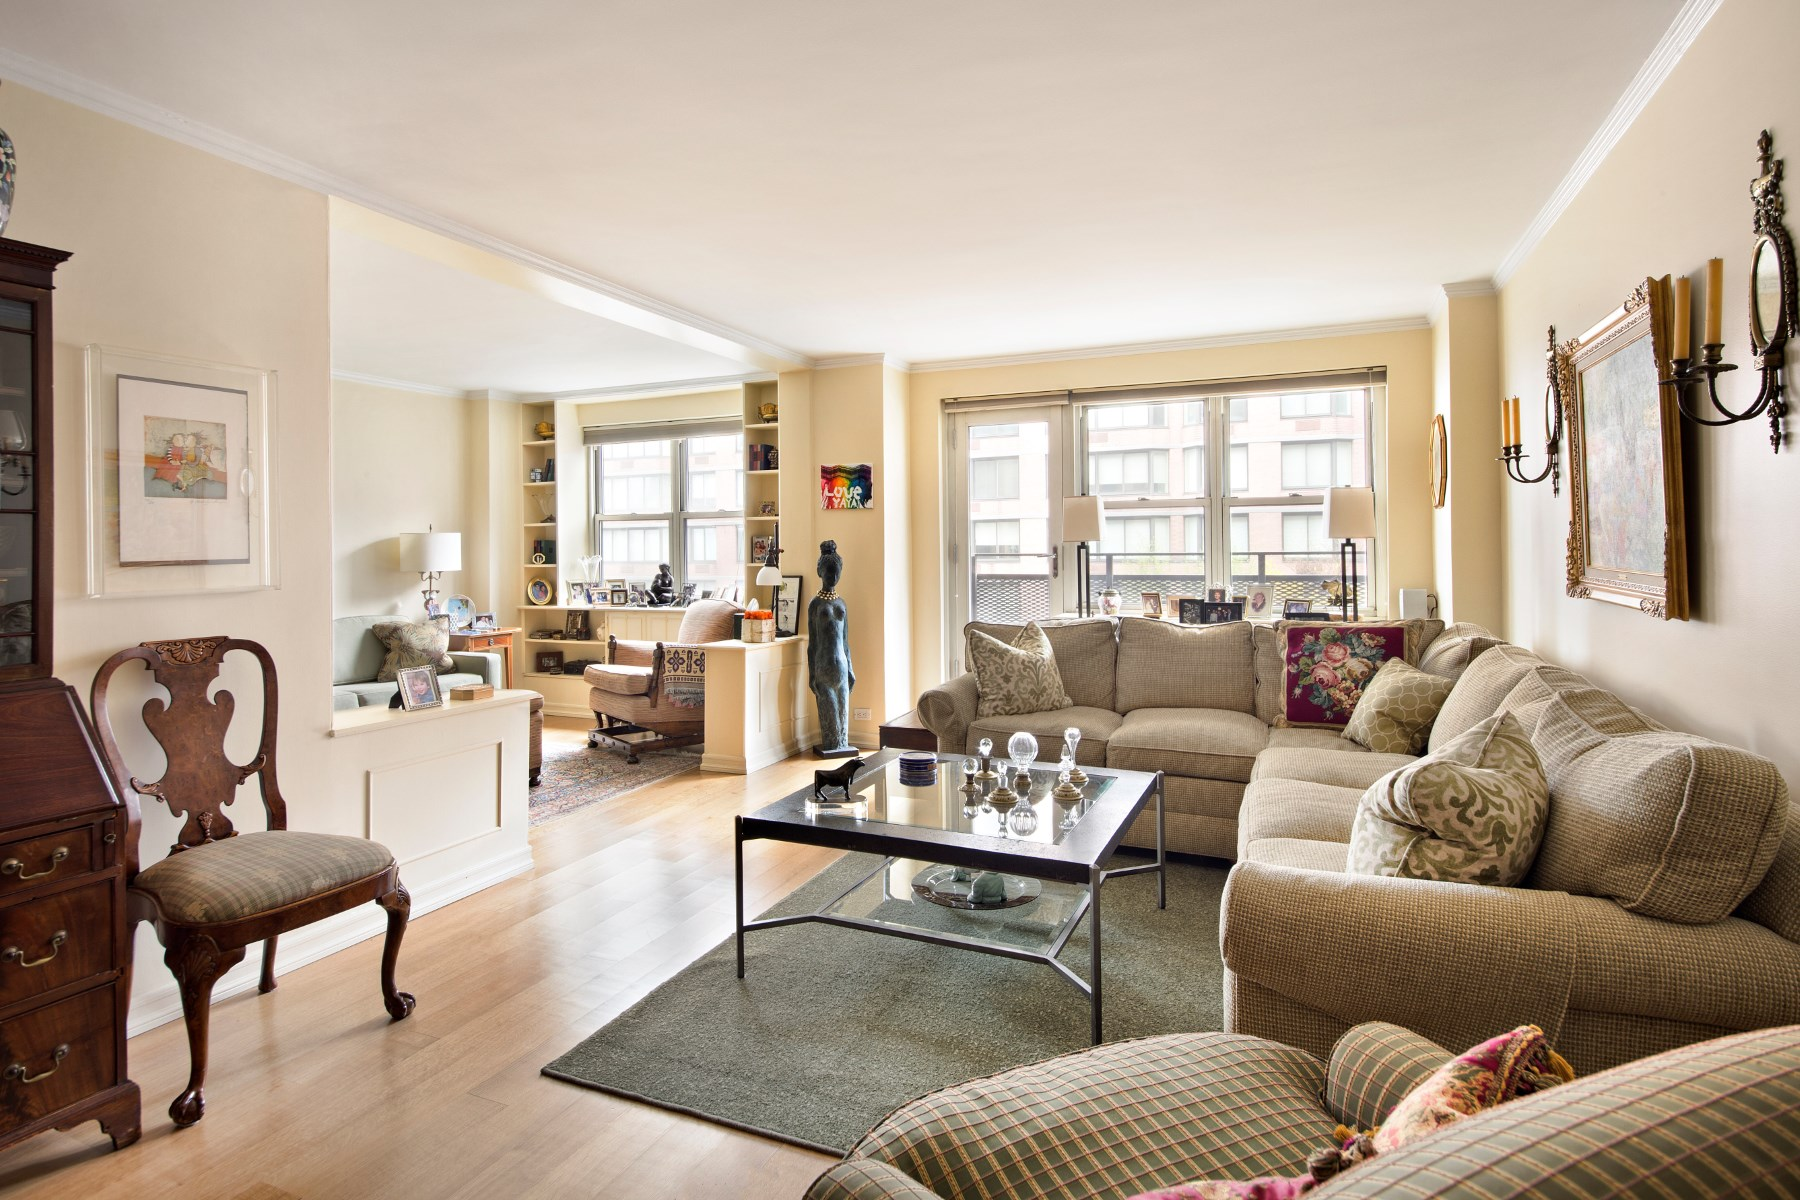 Co-op for Sale at 333 East 79th Street, Apt 5O 333 East 79th Street Apt 5o Upper East Side, New York, New York 10075 United States